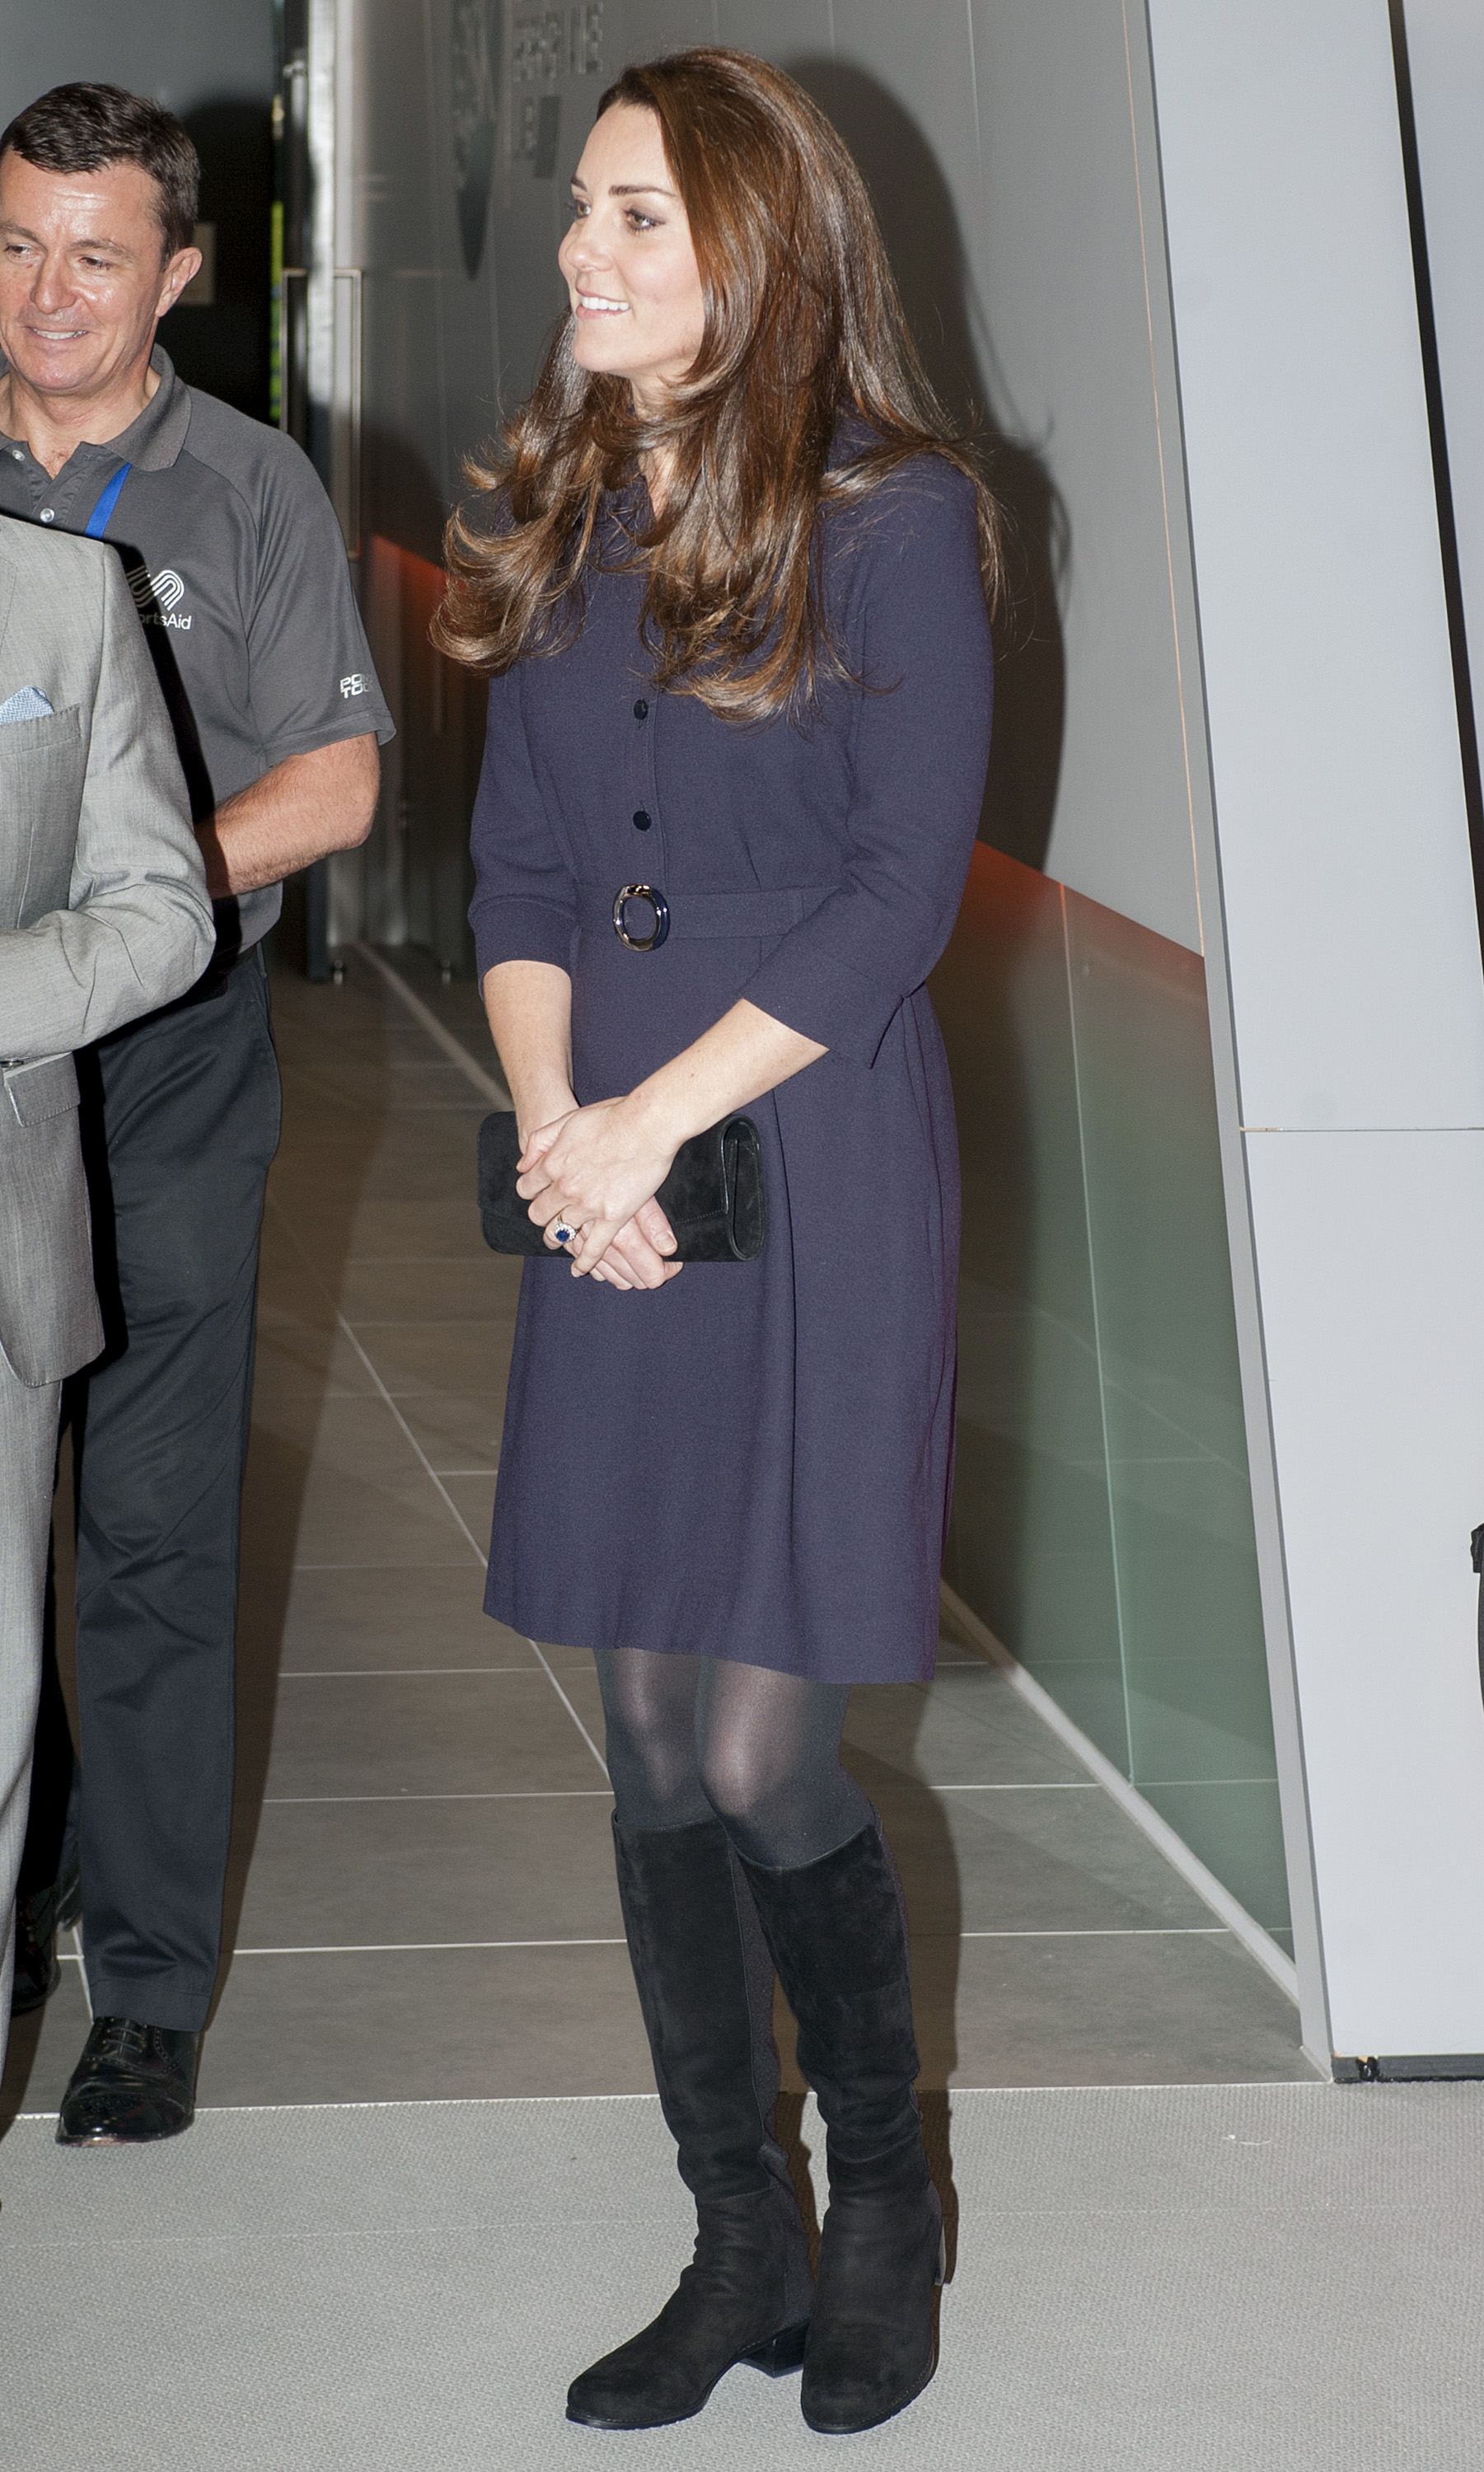 Catherine, Duchess of Cambridge meets young Athletes at a SportsAid workshop at the GSK Human Performance Laboratory in London on Nov. 12, 2014.